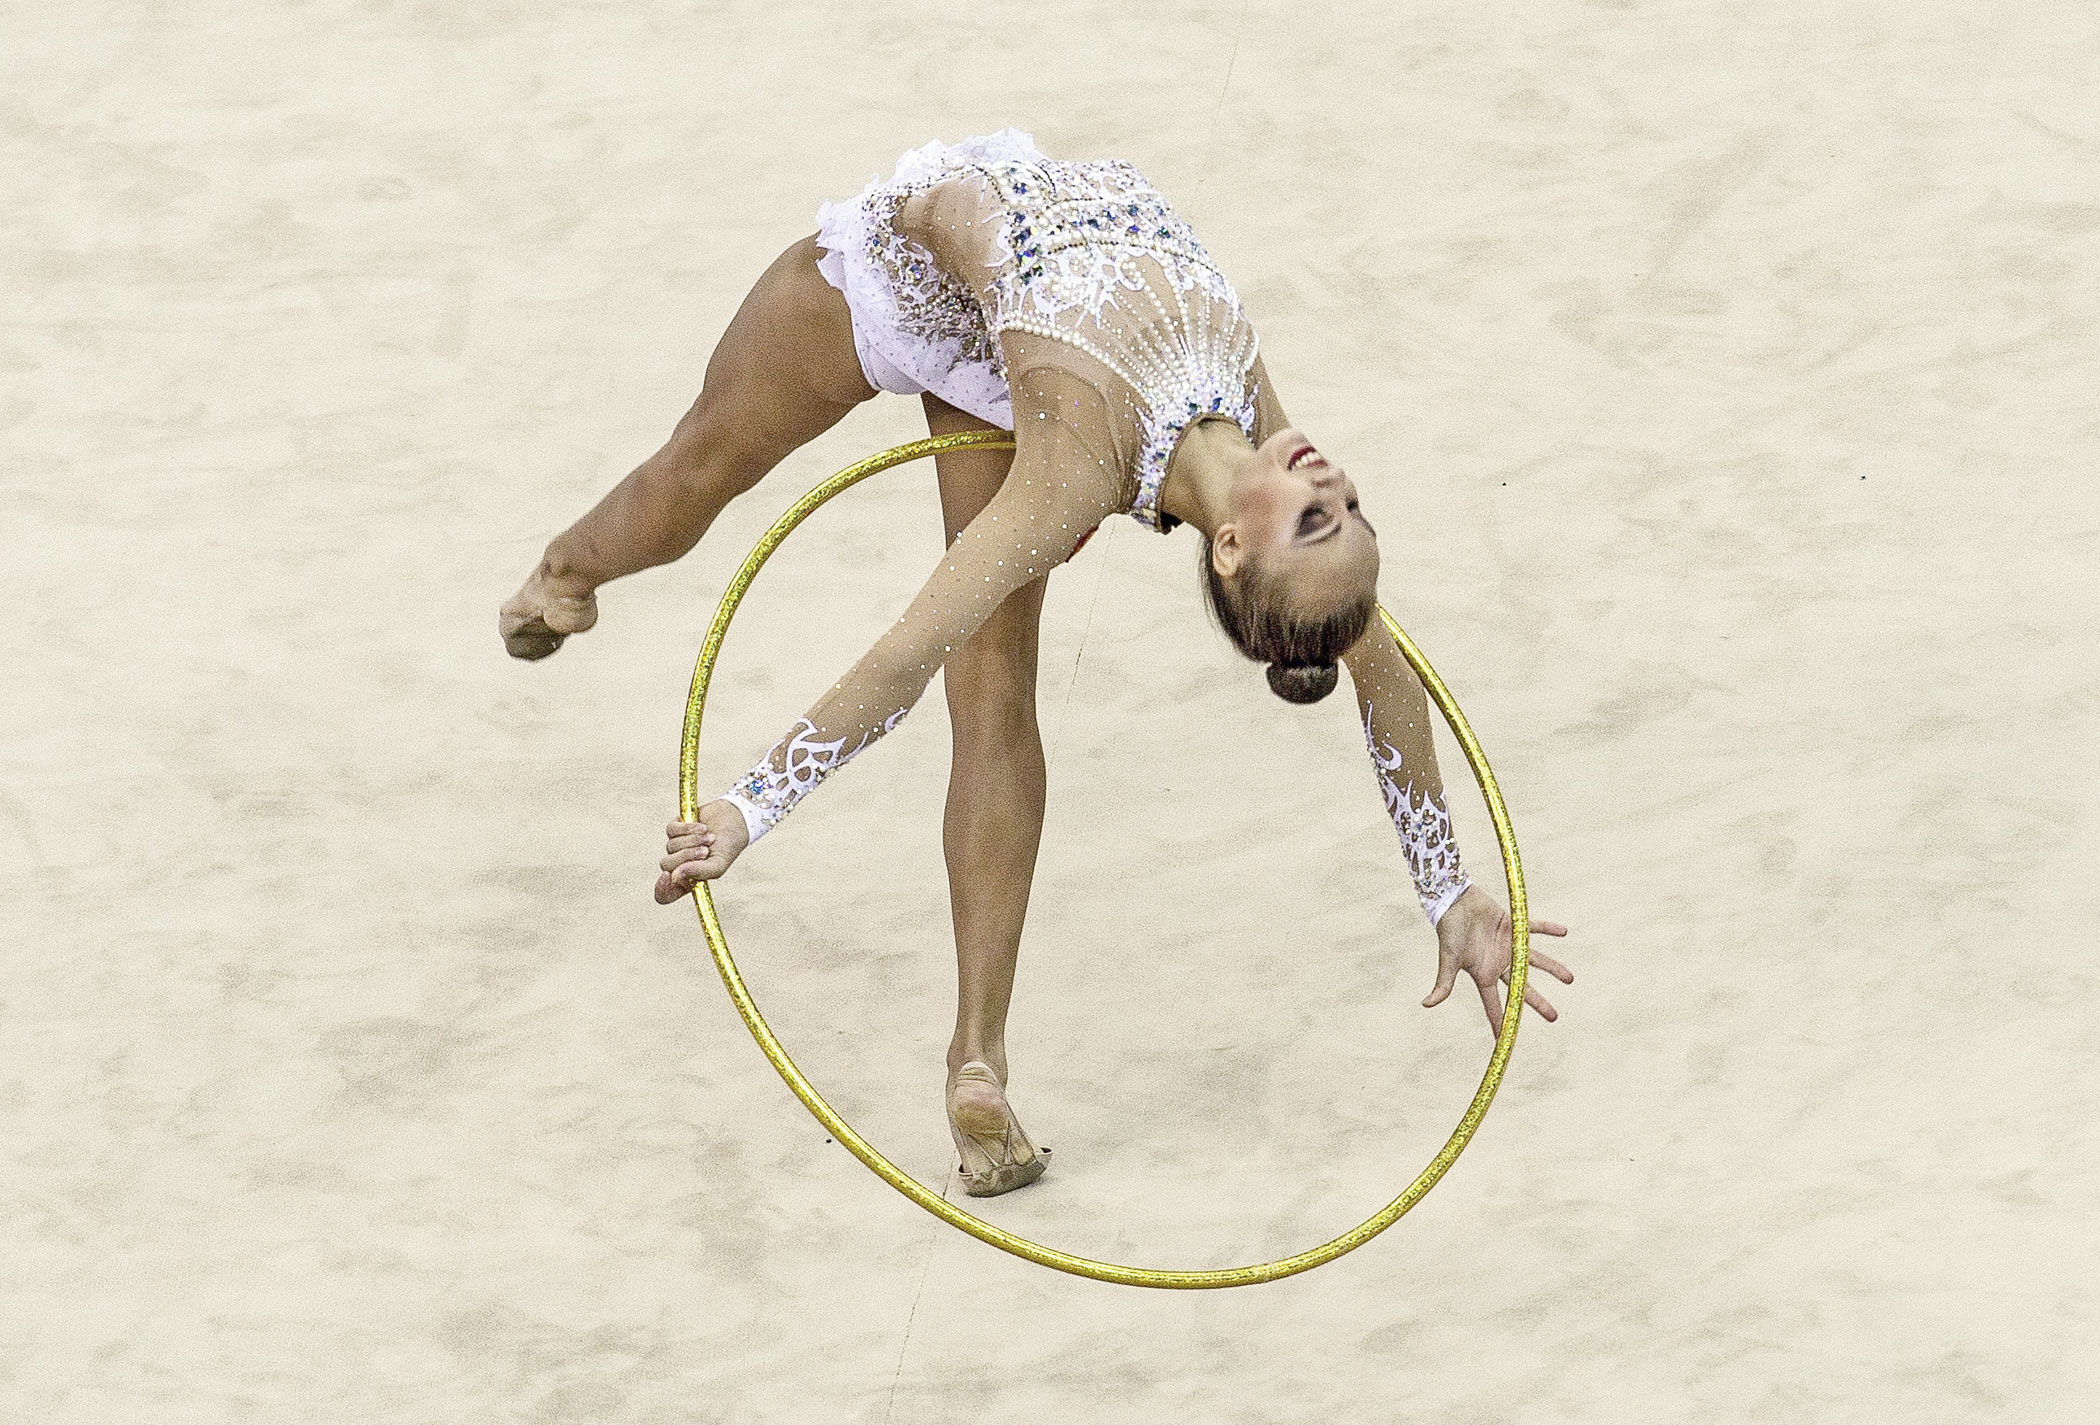 Irina Annenkova of Russia competes in Rhythmic Gymnastics Individual All-Around Qualification on day ten of the Nanjing 2014 Summer Youth Olympic Games at Nanjing OSC Gymnasium on Aug. 26, 2014 in Nanjing.